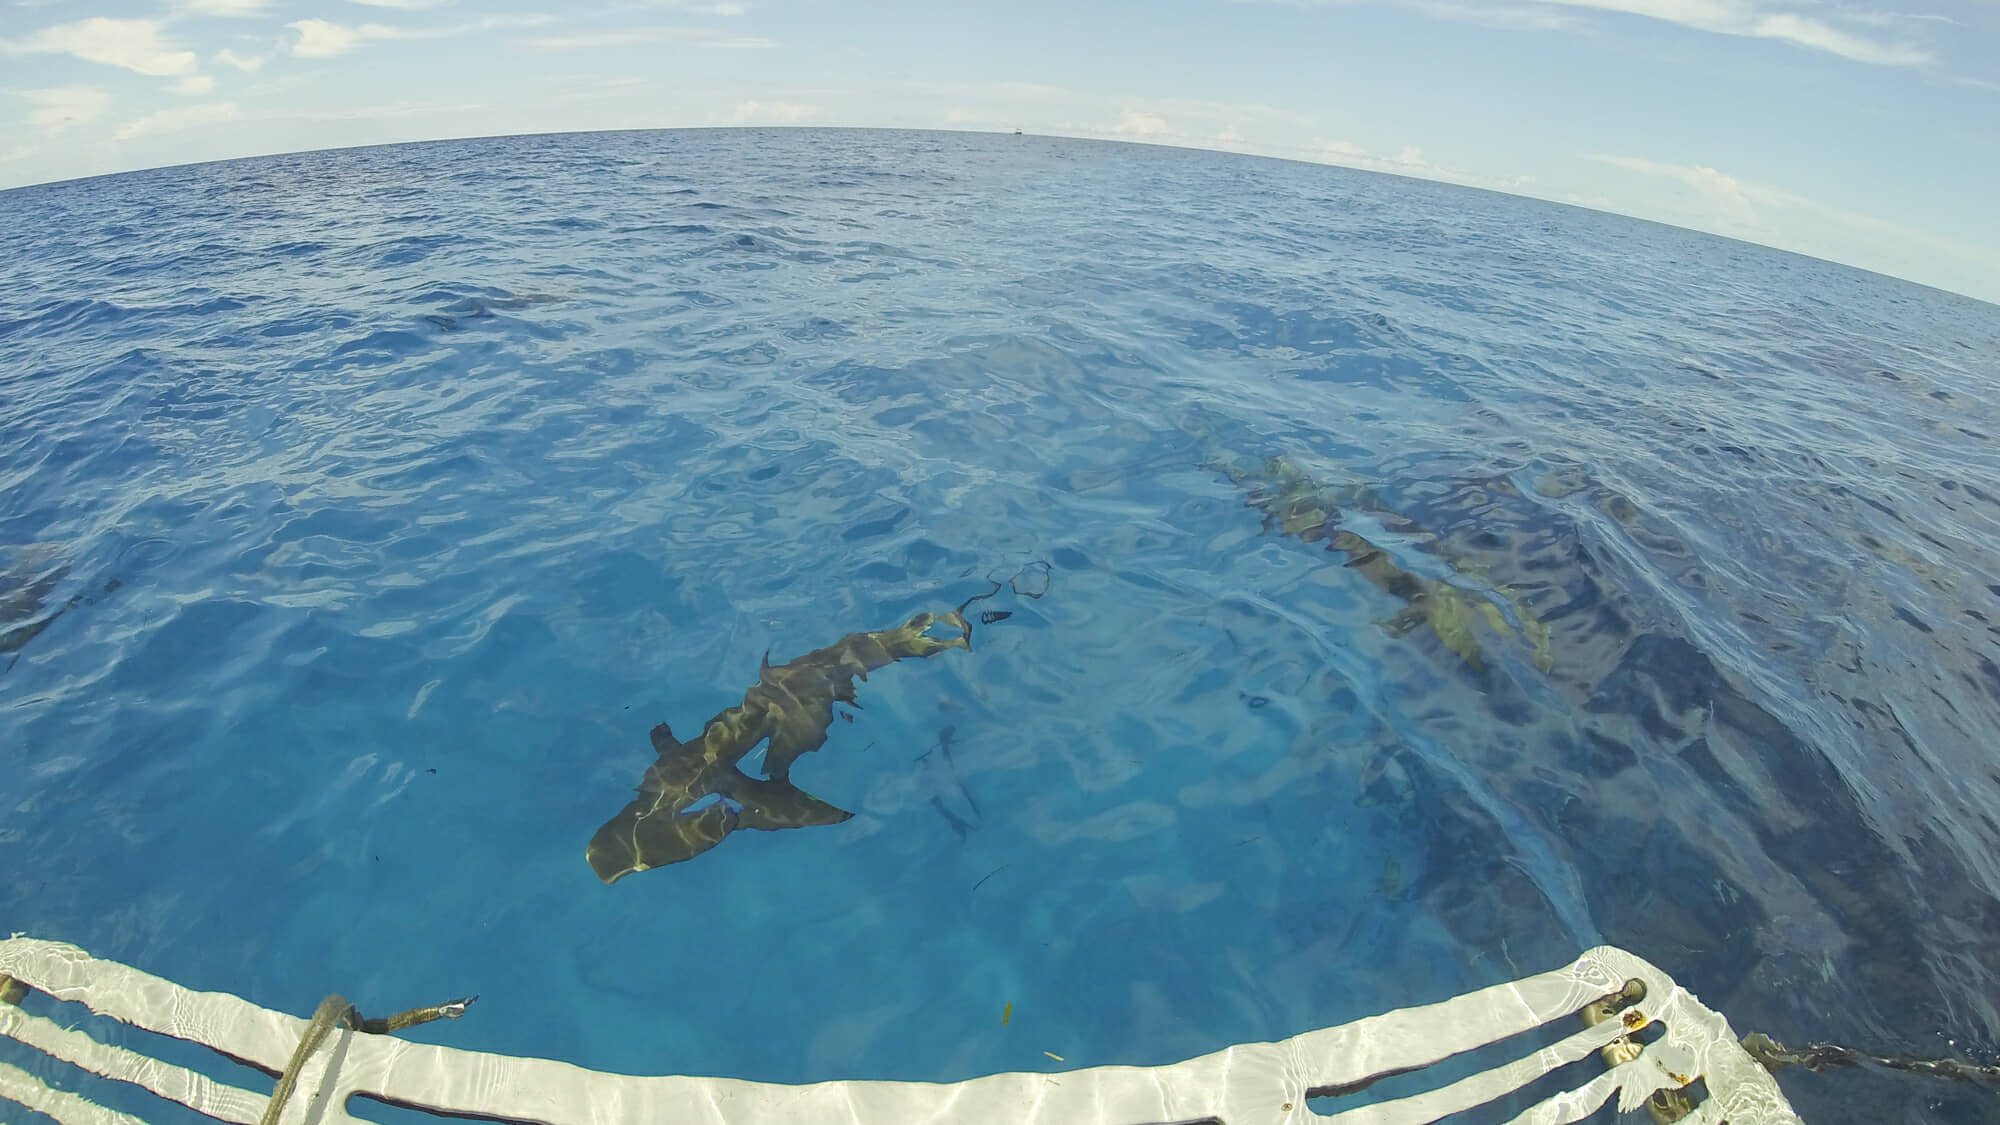 Tiger sharks schooling below our dive boat.